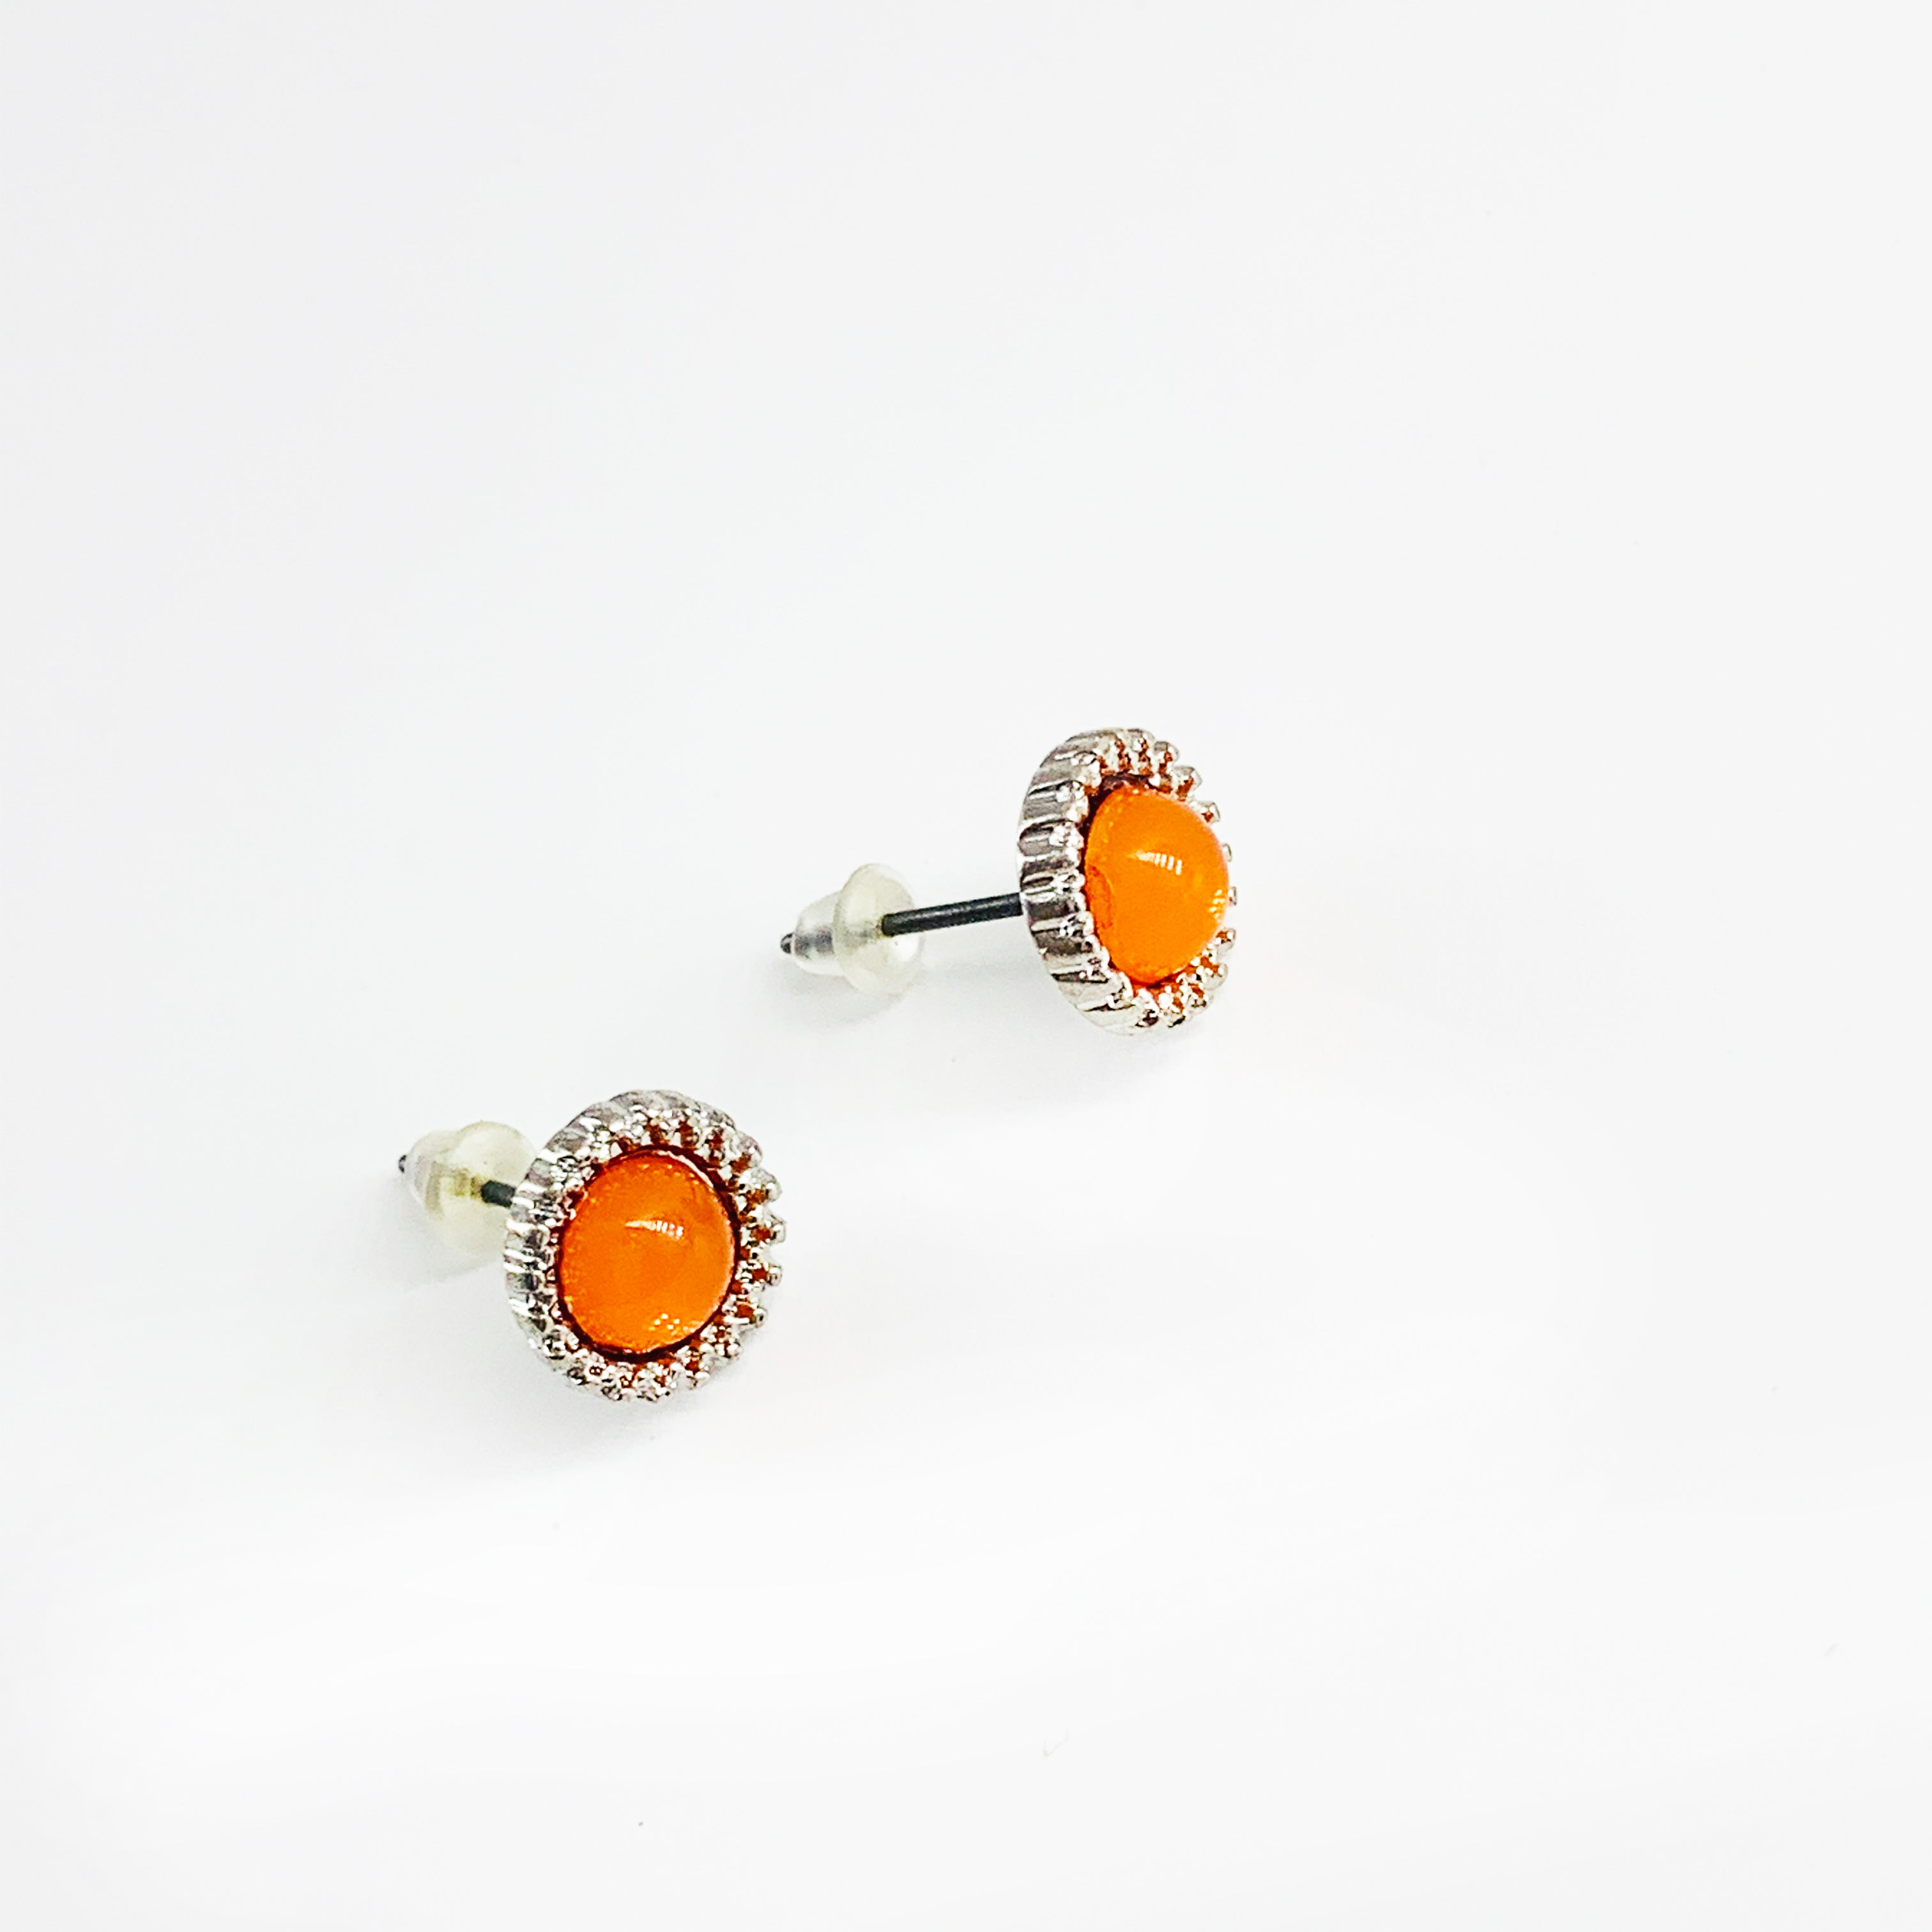 Small silver earrings with orange stone